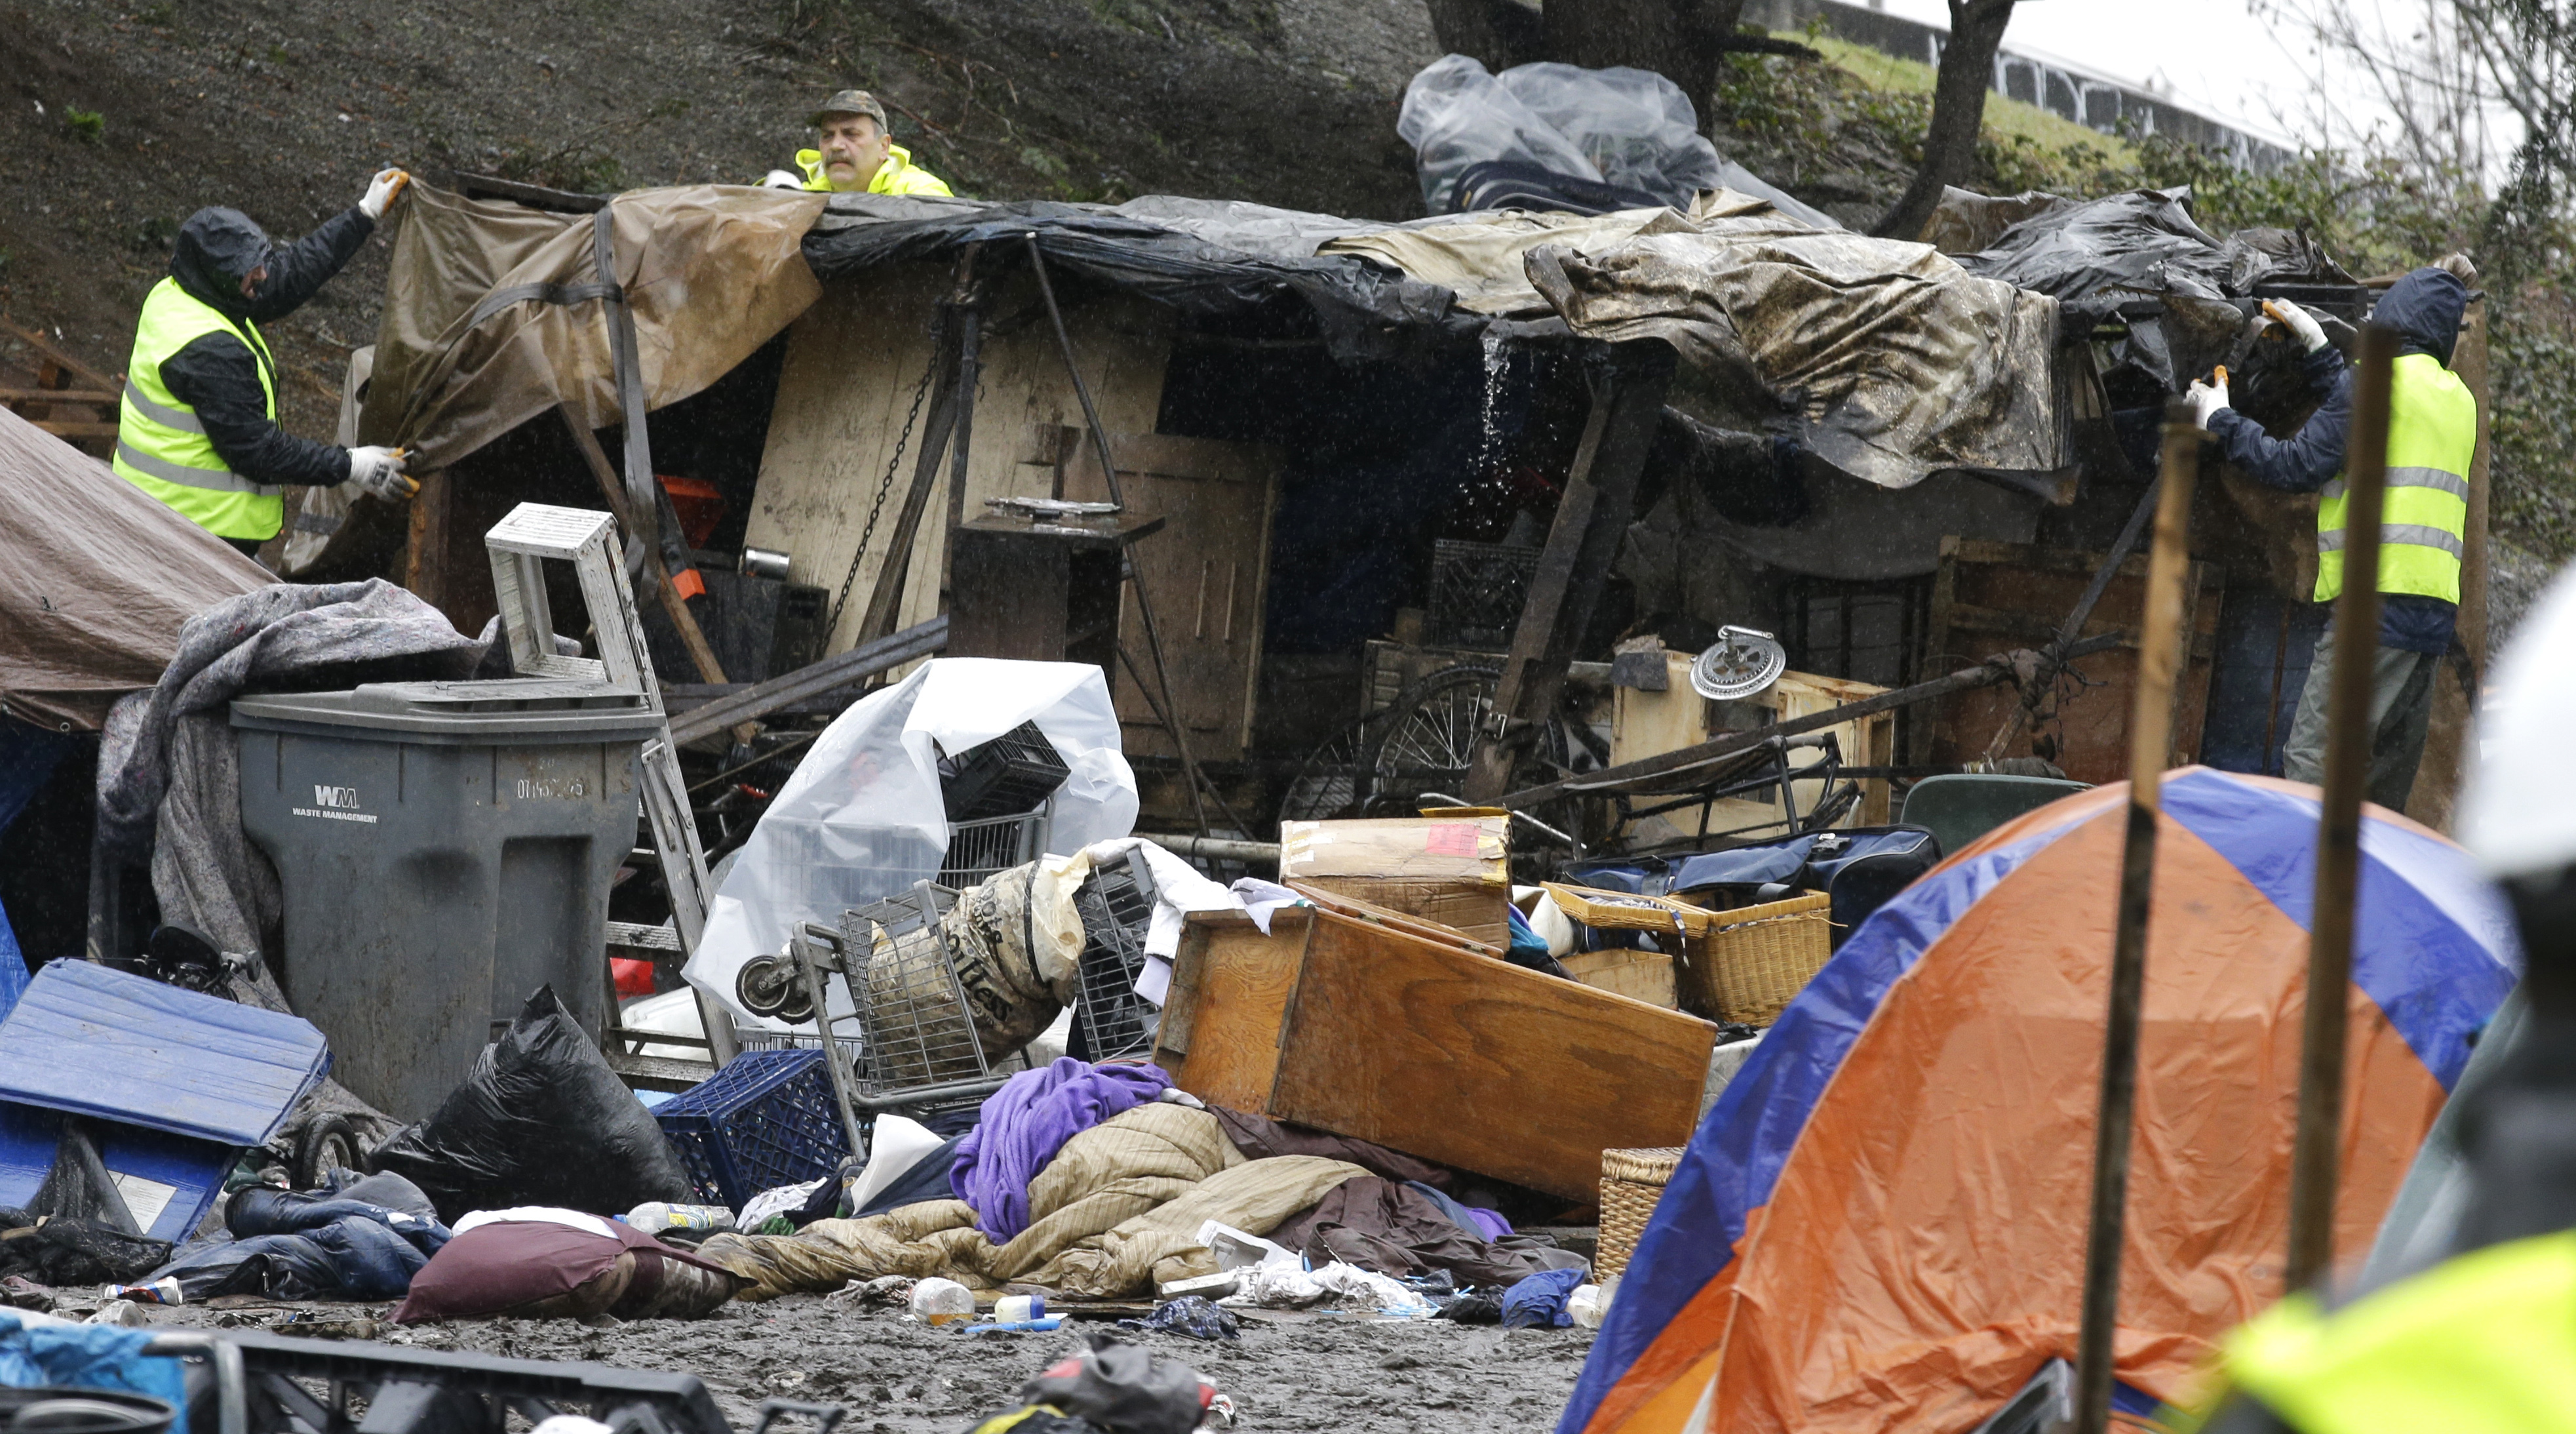 Seattle officer who cleaned up homeless camps files $10M claim